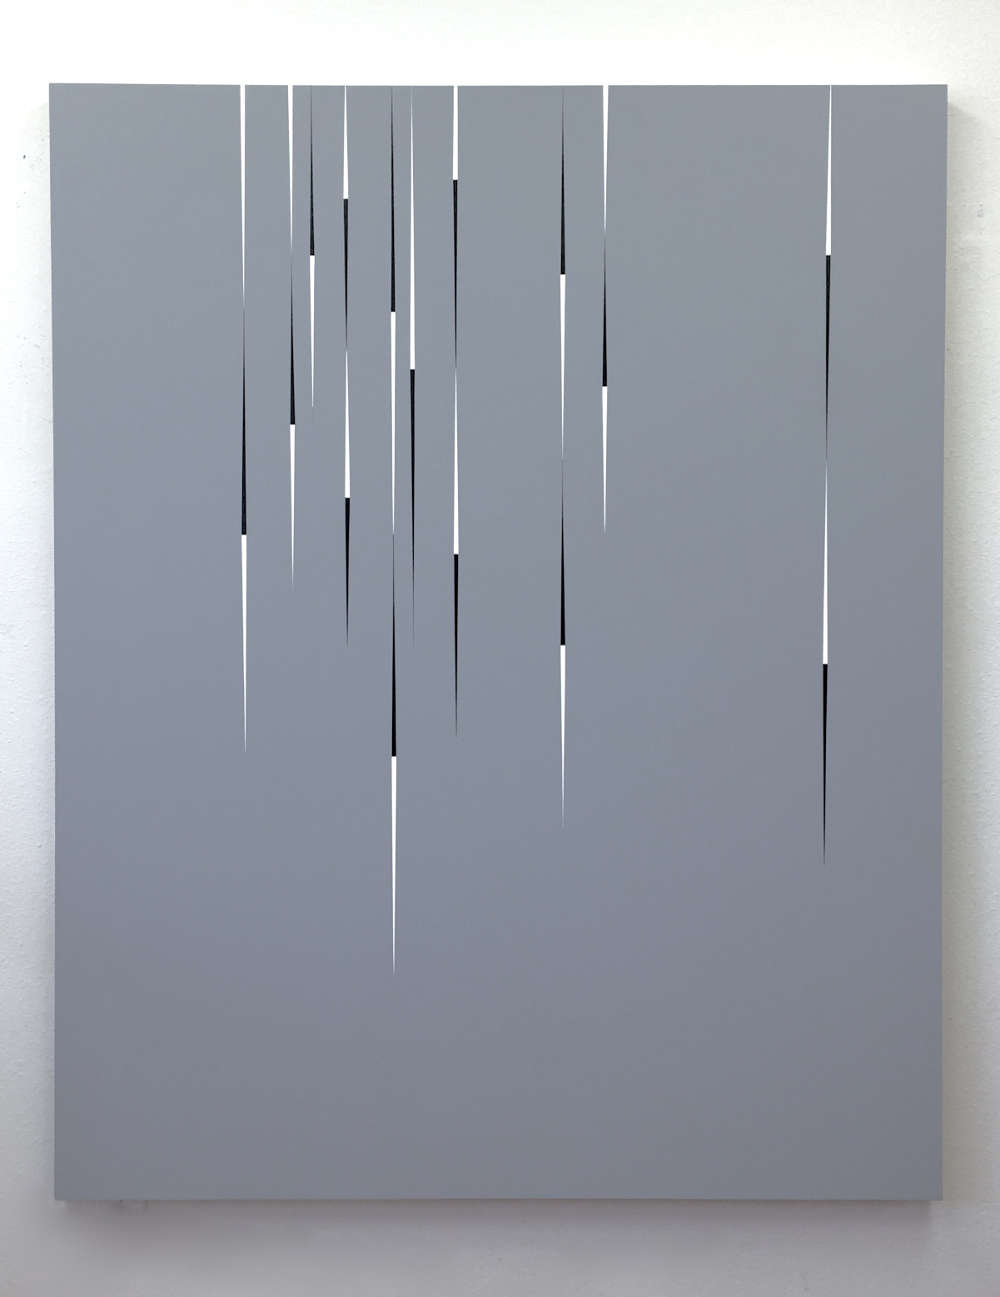 Richard Roth, Exit Strategy, 2018. Acrylic on wood panel 60 x 48 in